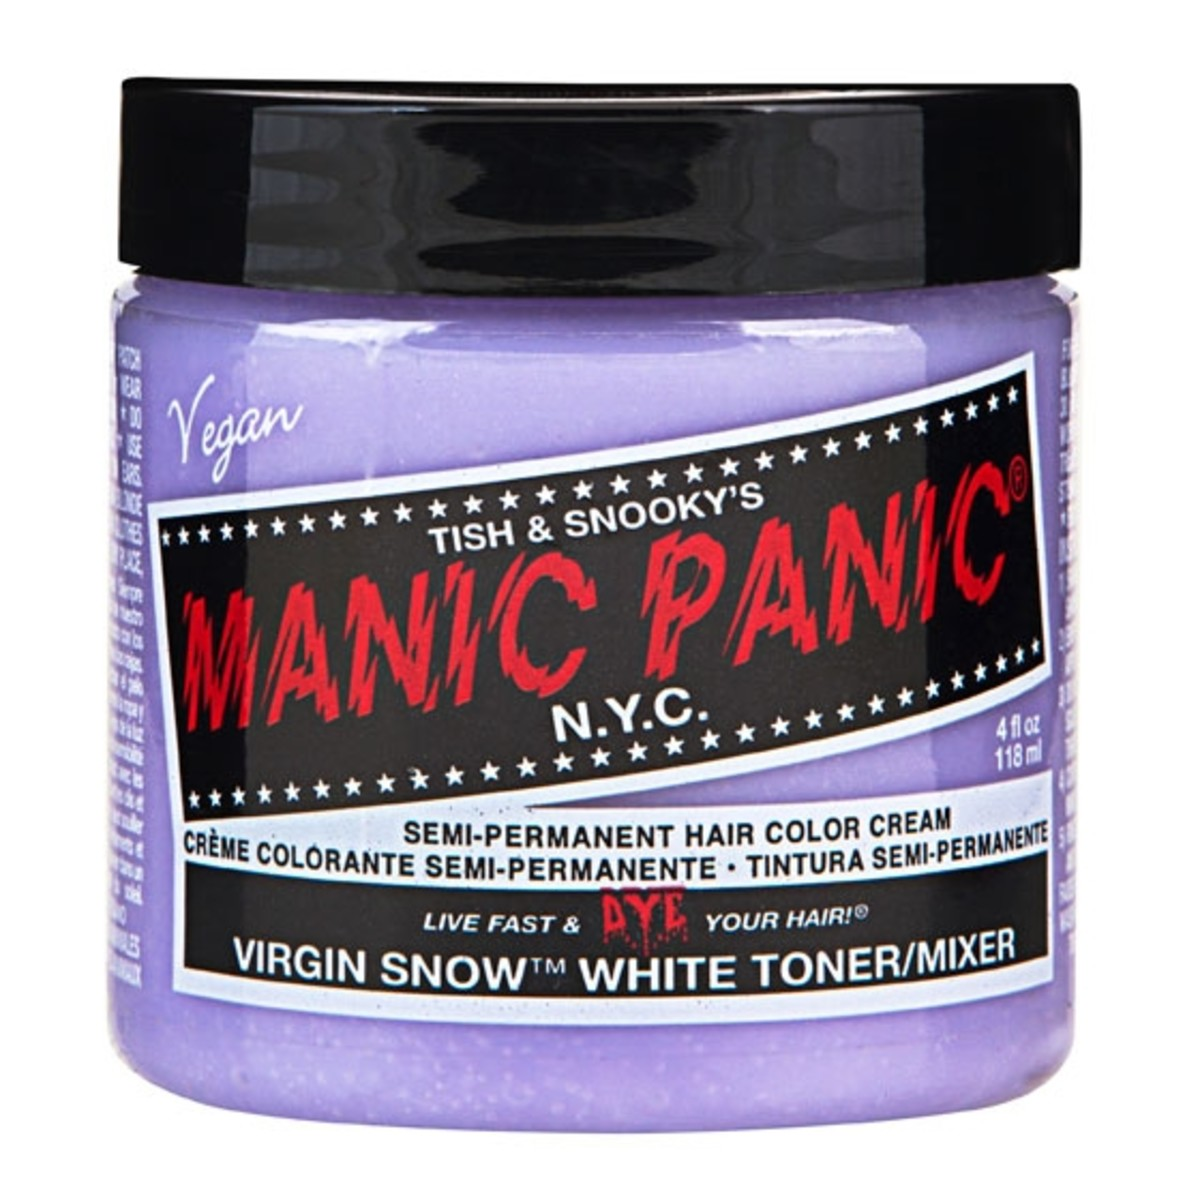 Manic Panic Virgin Snow Toner: a weak purple dye to neutralize orange tones in hair. Save money and create the same effect by mixing purple dye with white conditioner to make a very light purple dye.